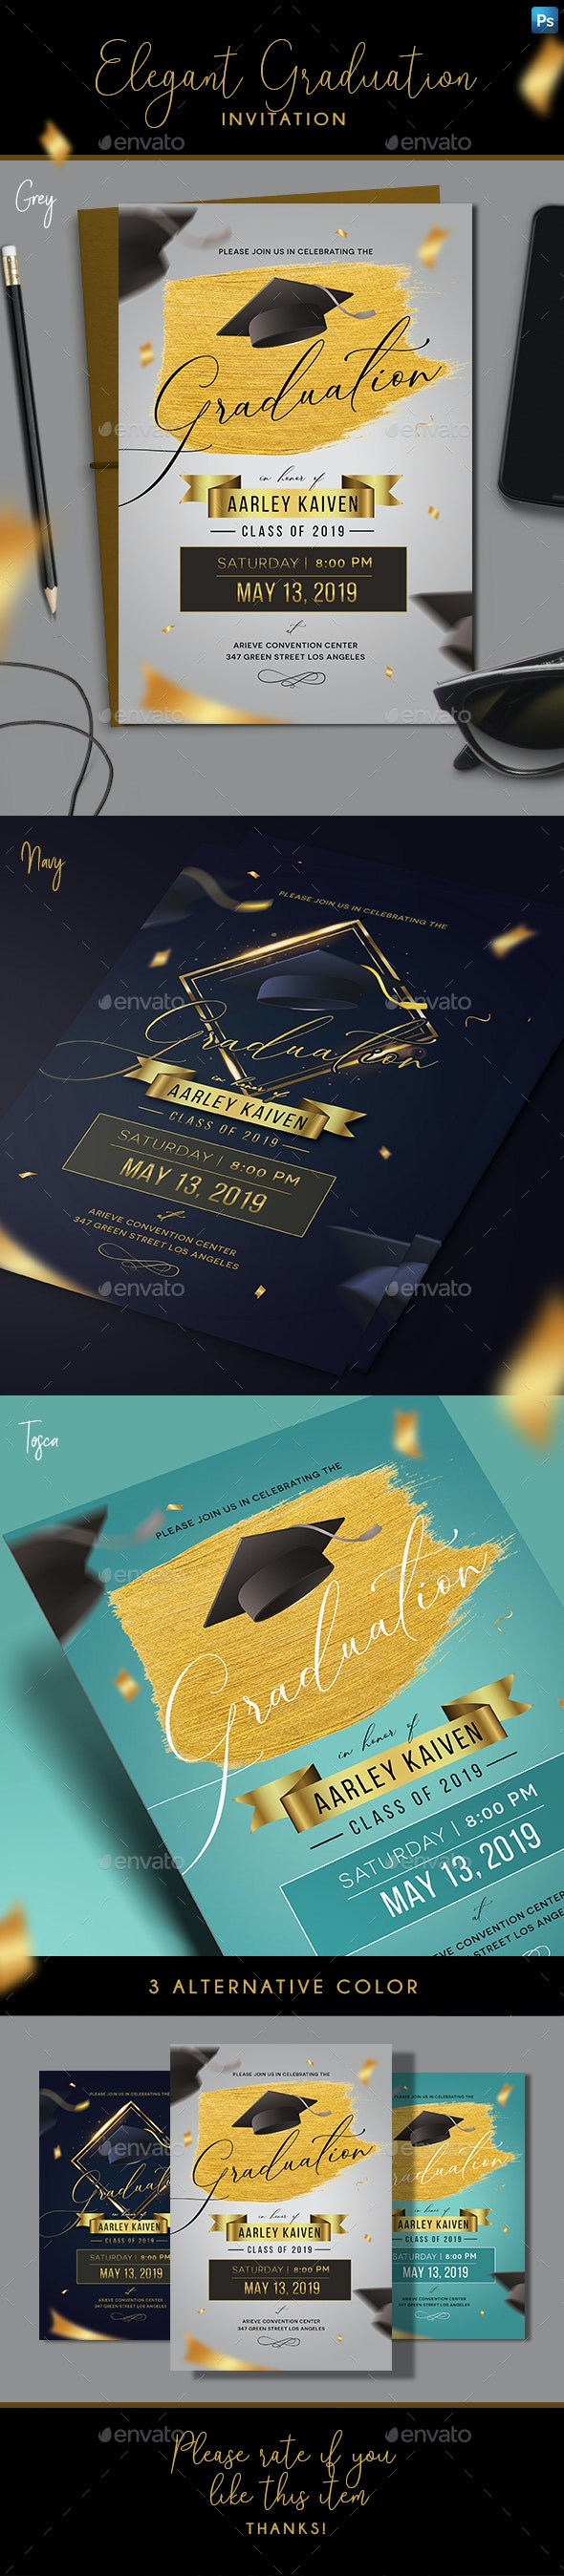 Elegant Graduation Invitation - Invitations Cards & Invites